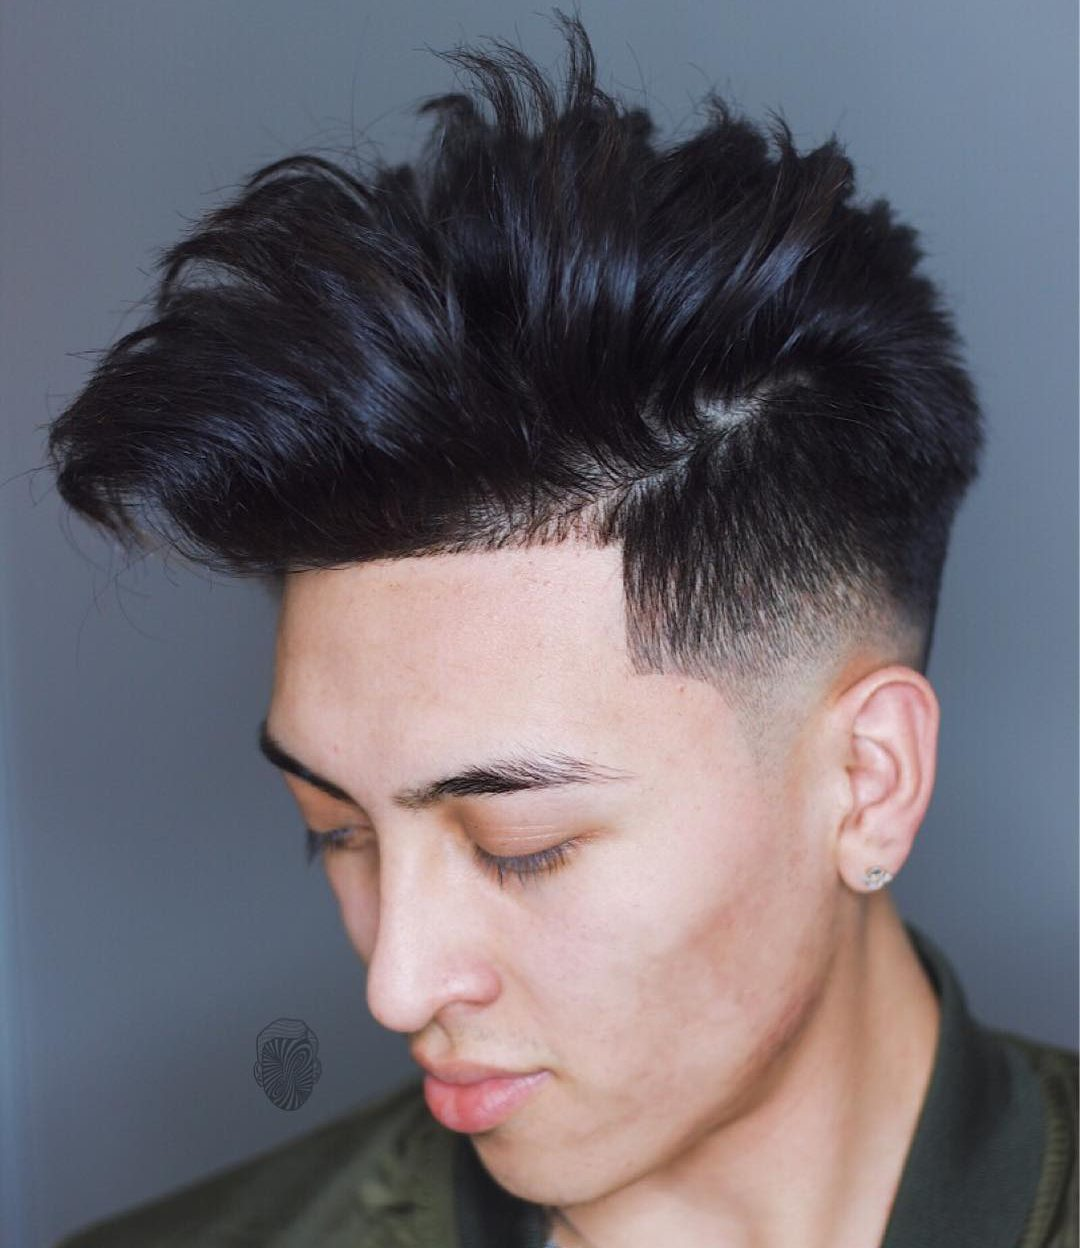 Asian mohawk hairstyle